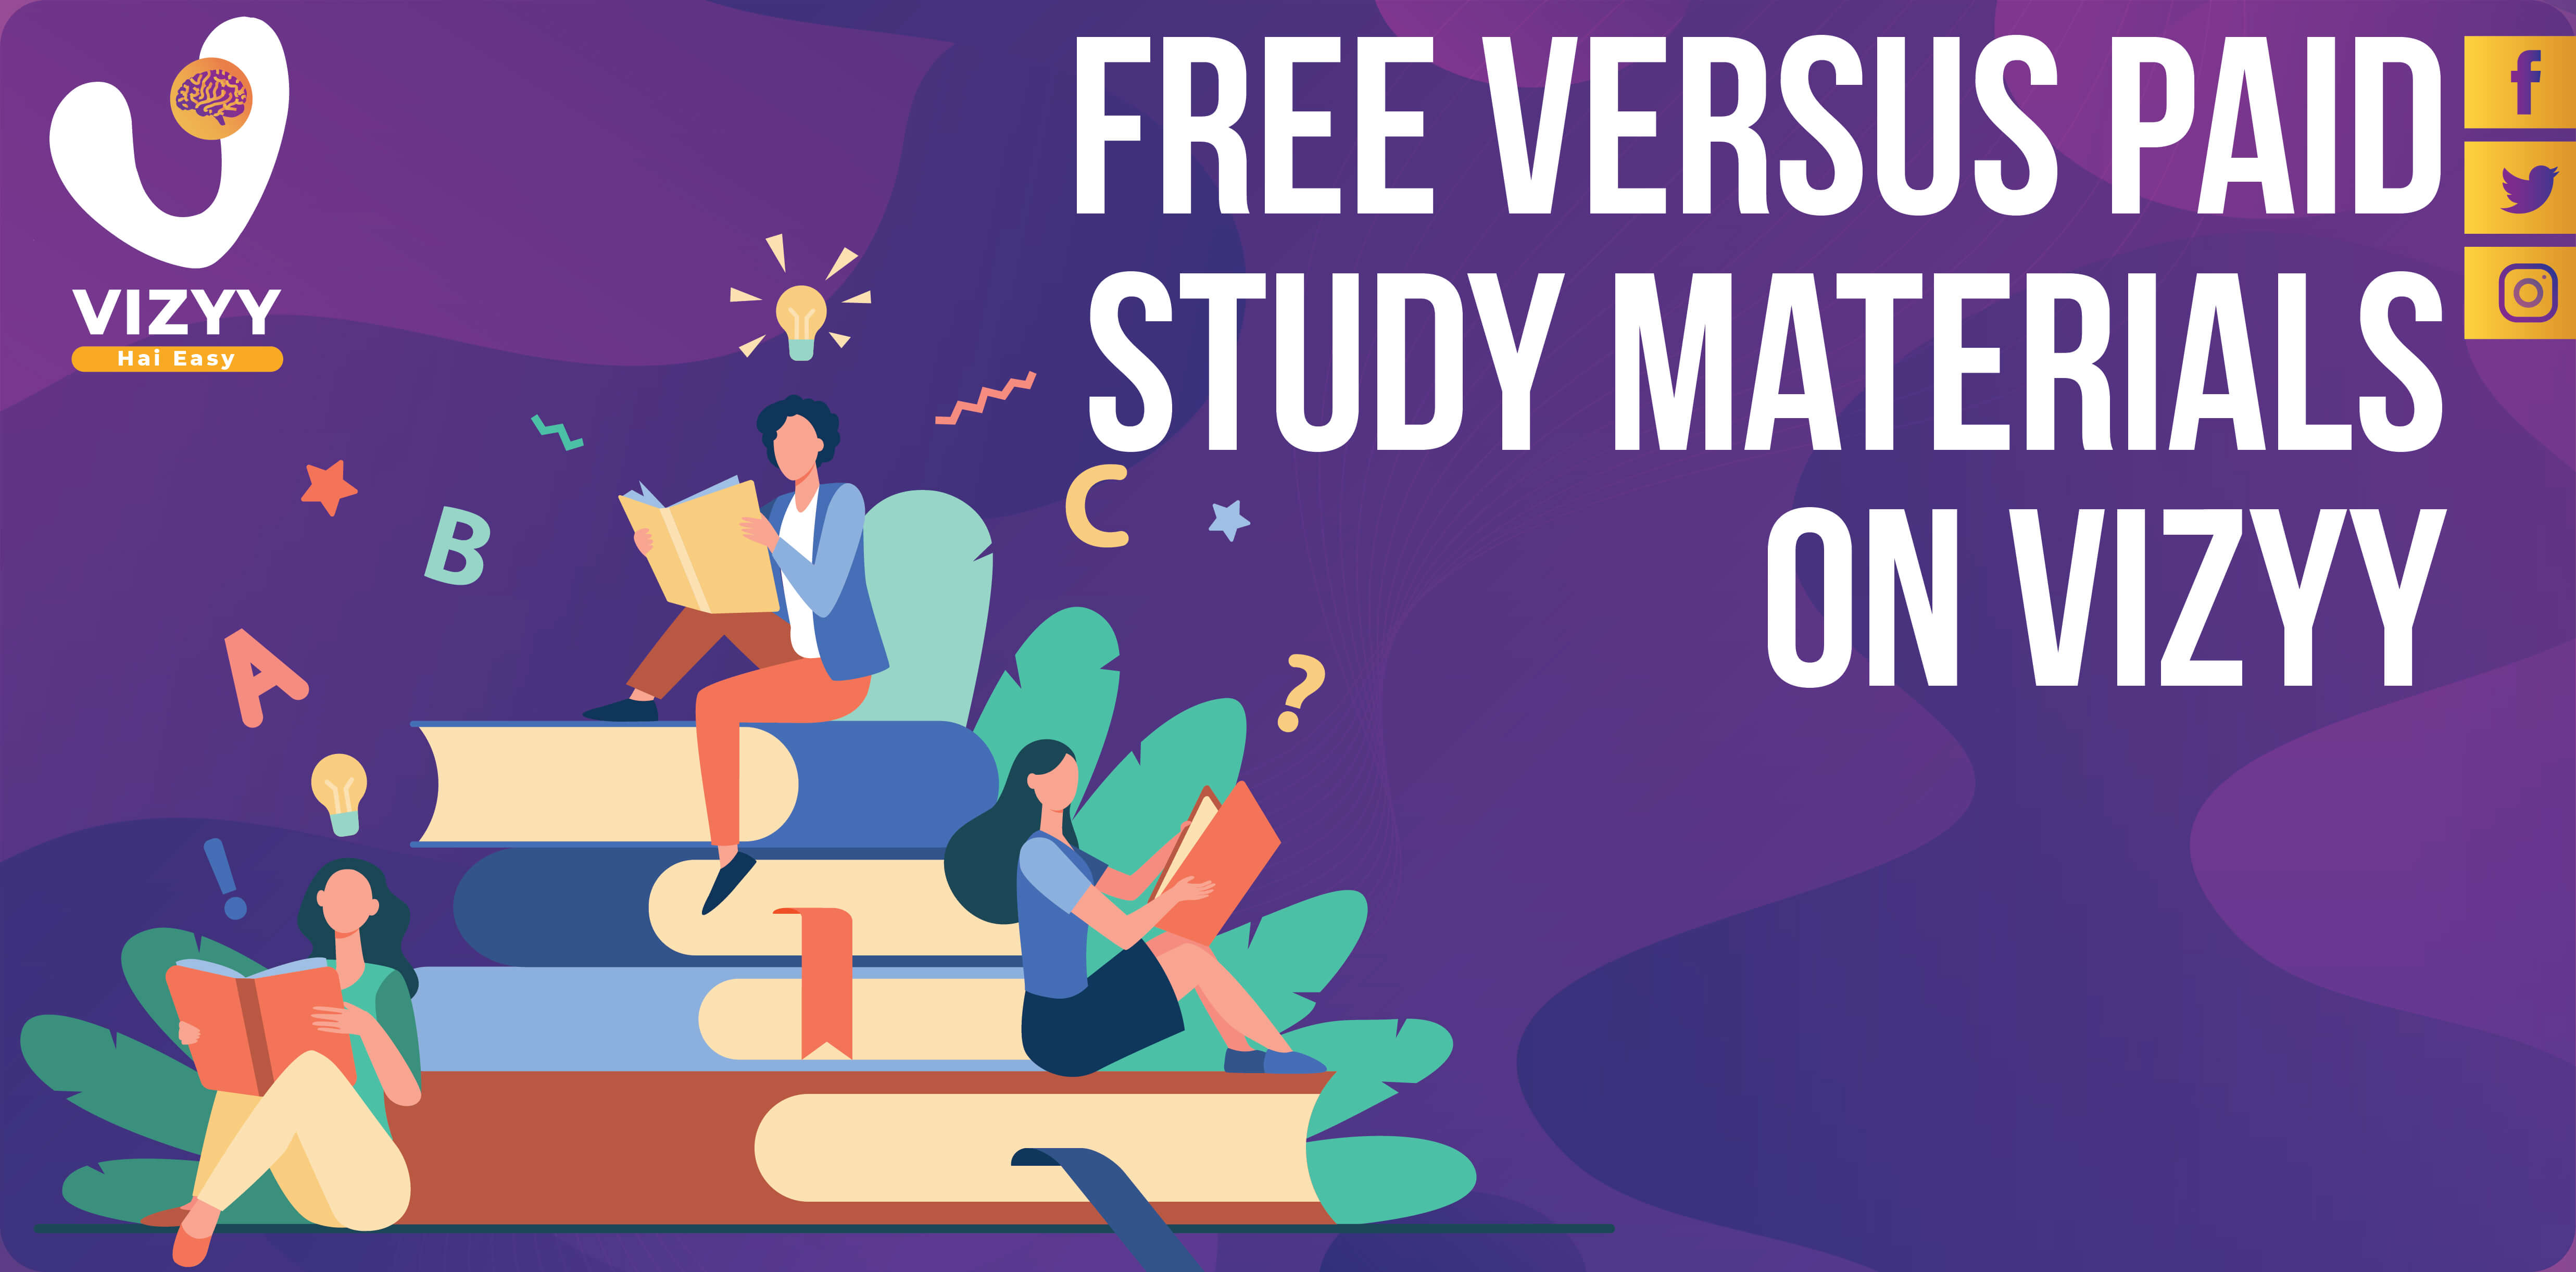 Free Versus Paid Study Materials on Vizyy